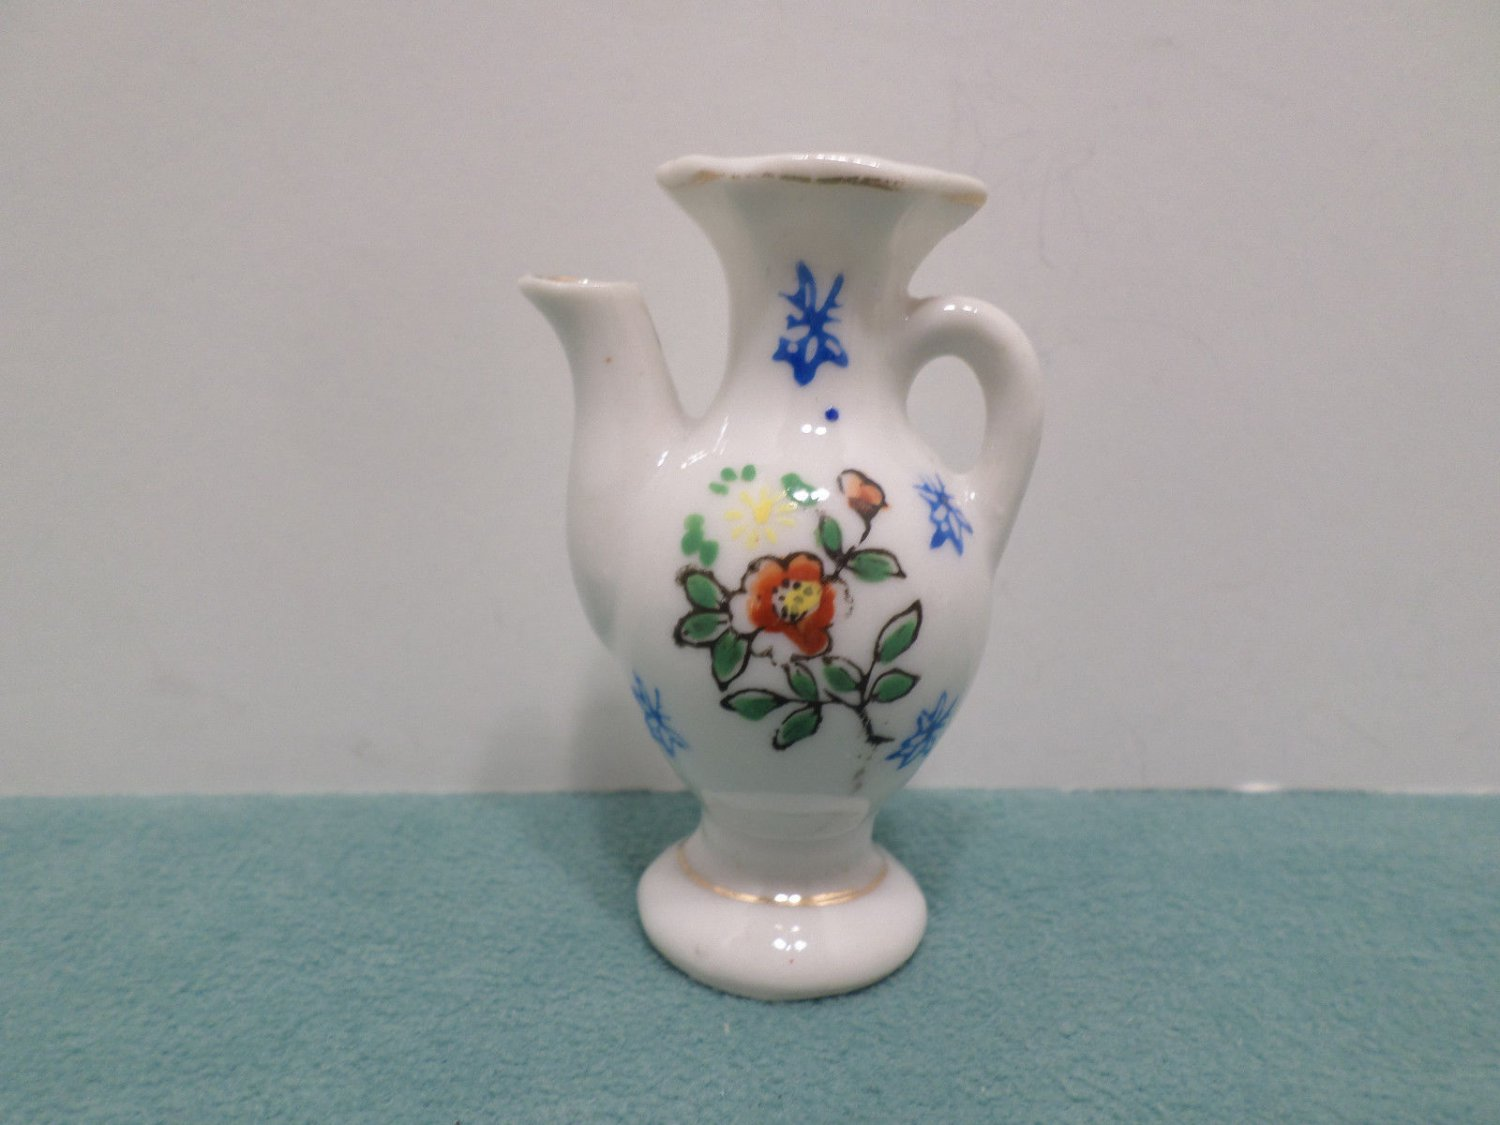 Water Pitcher Miniature Porcelain made in Japan